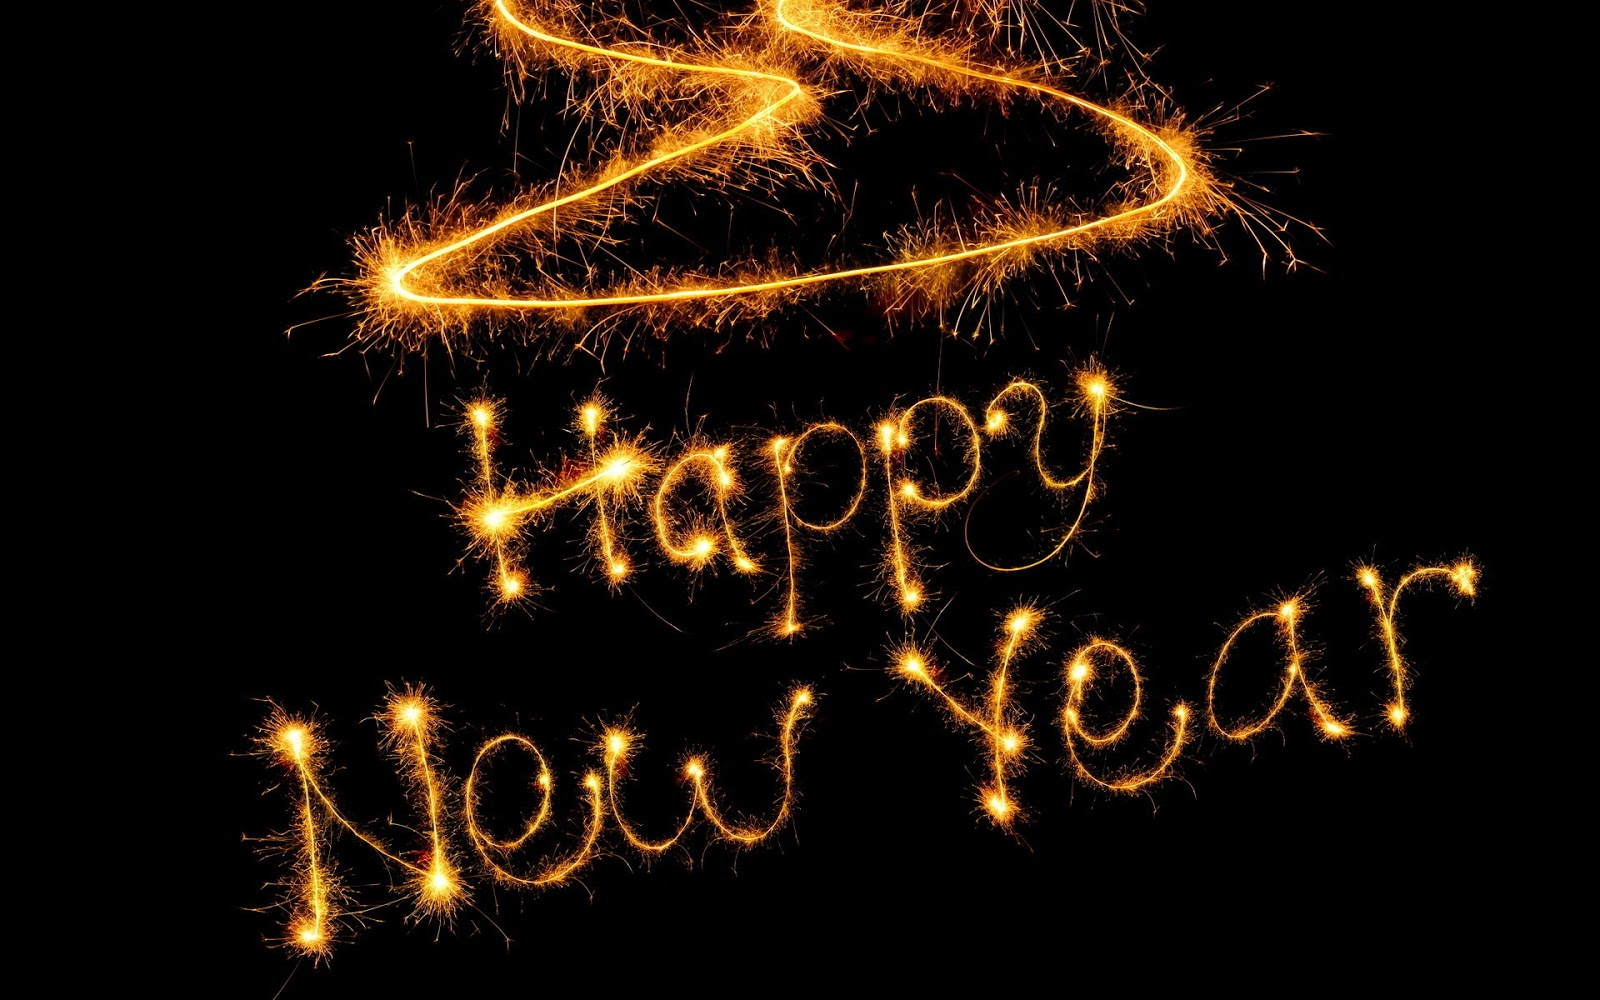 Happy New Year 2013 HD Wallpaper. 1600 x 1000.Happy New Year Animated Gif